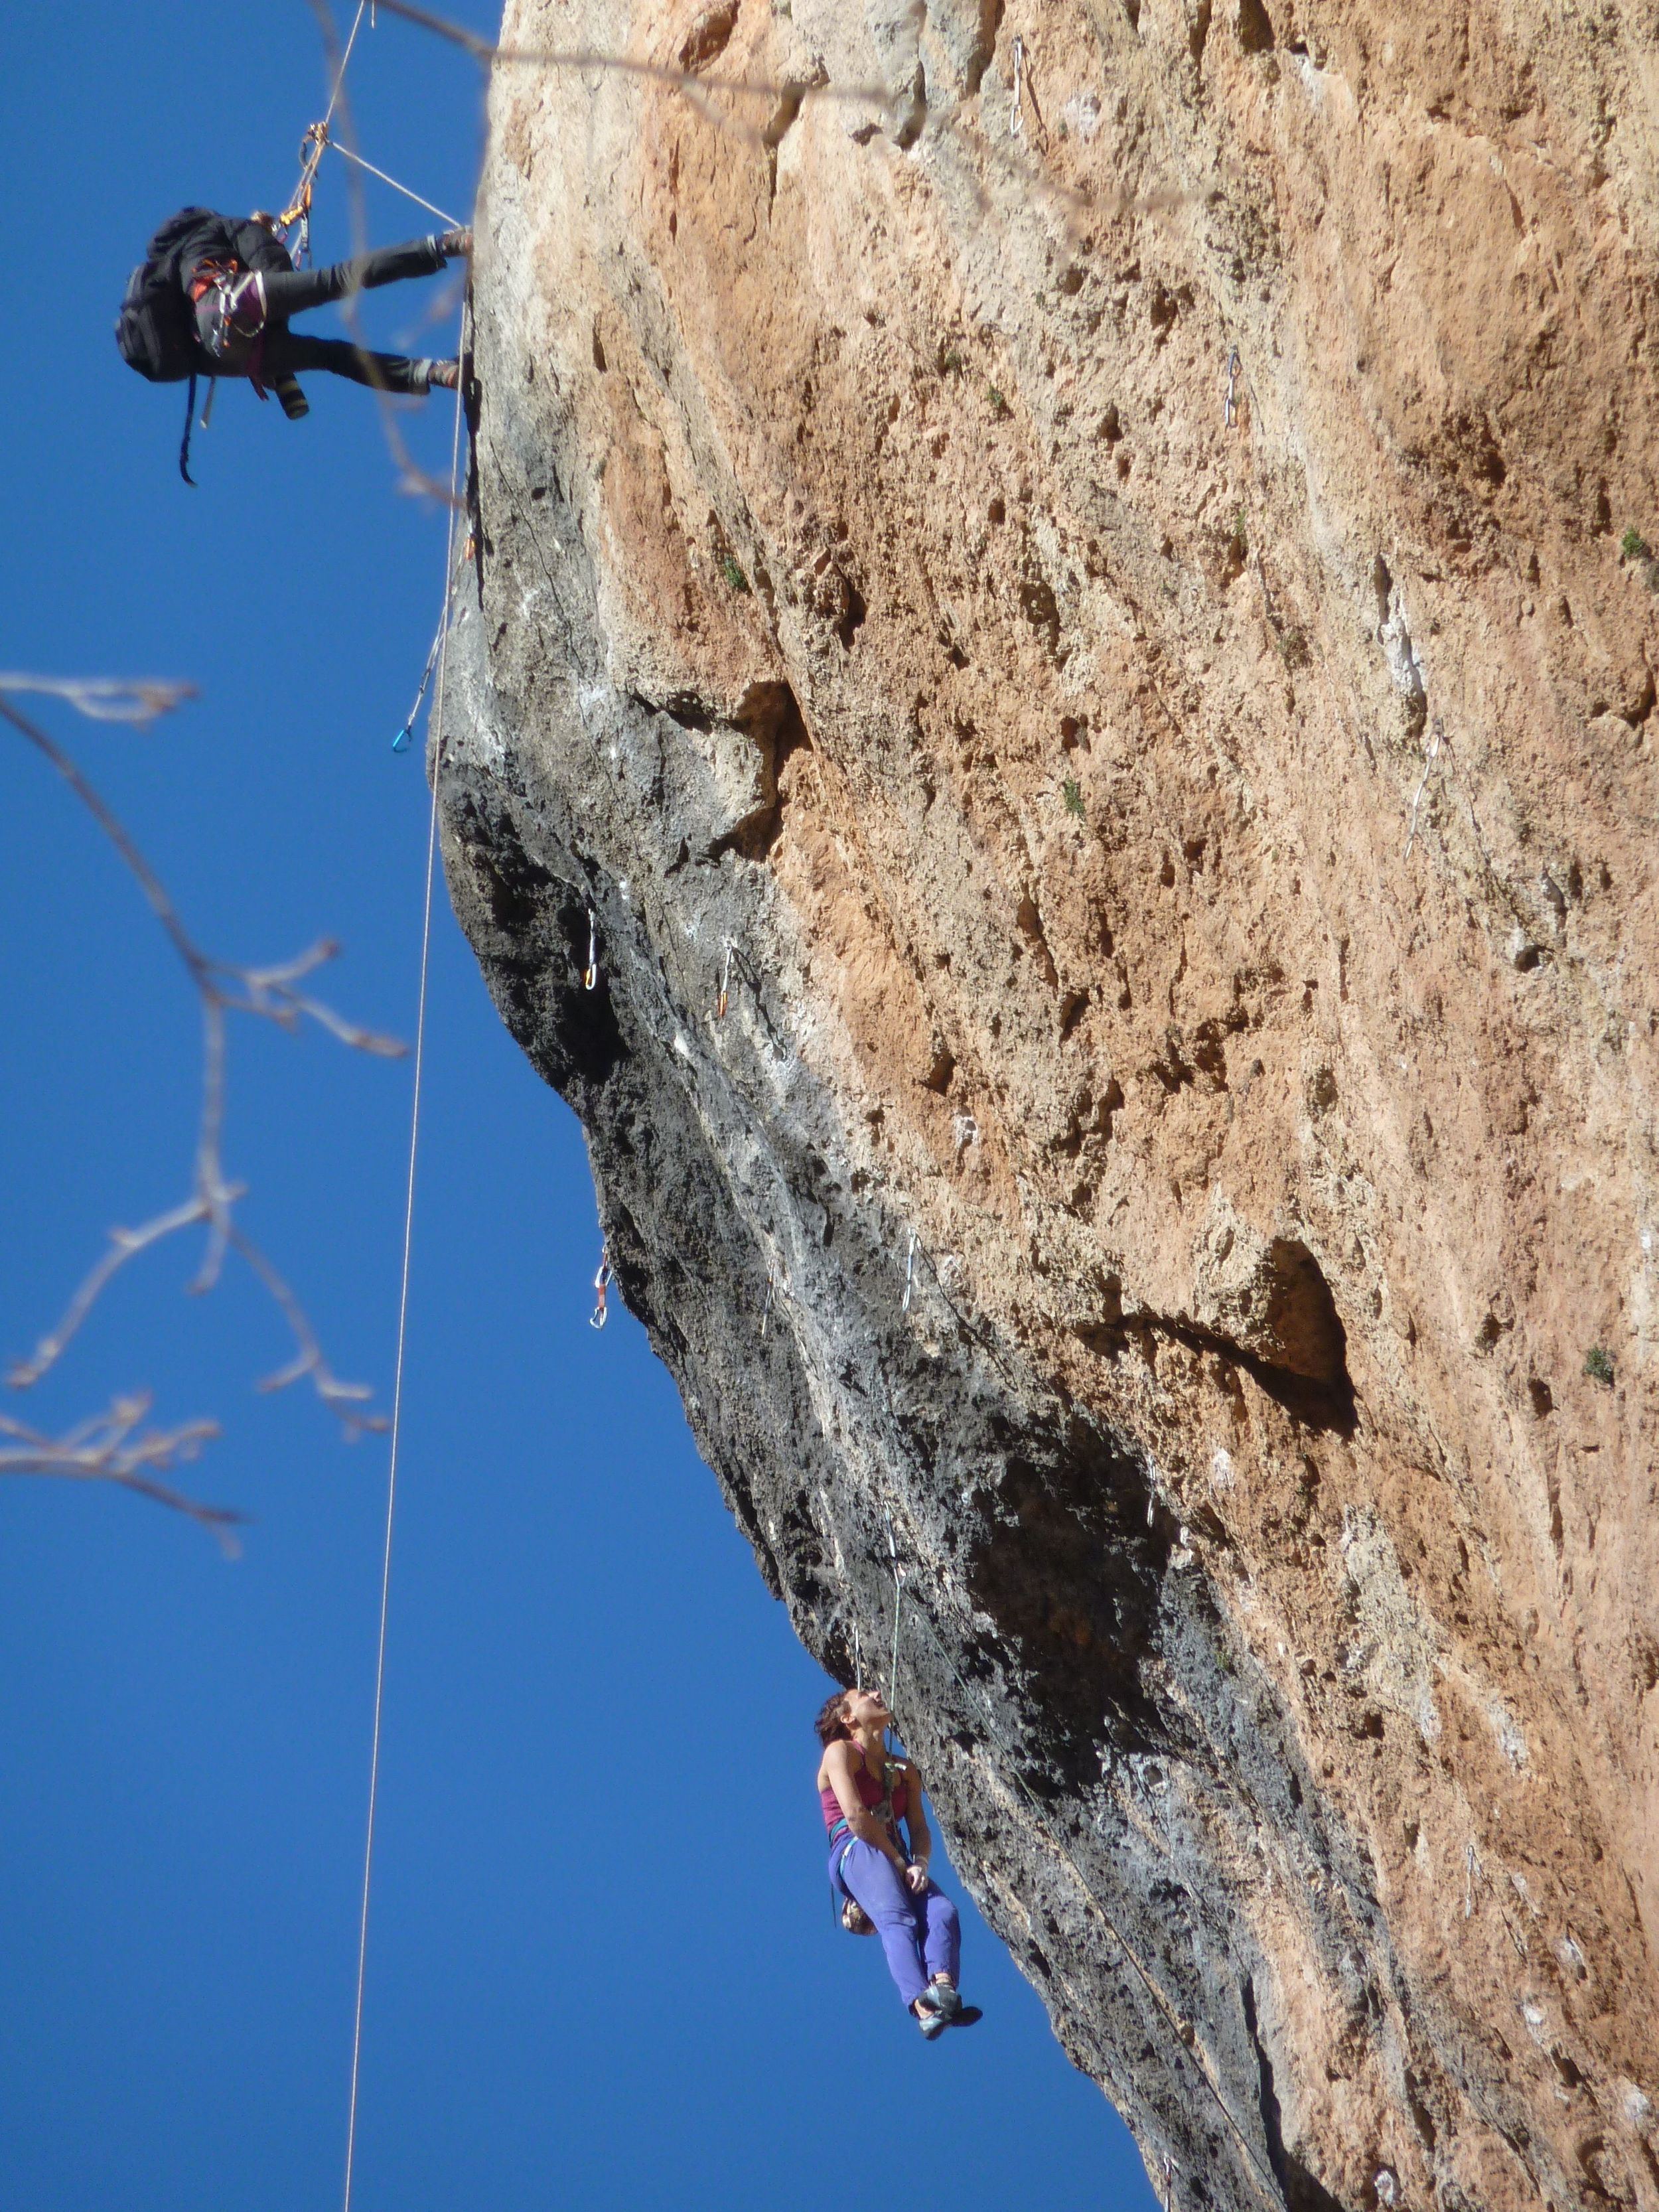 Alizee Dufraisse working the moves of La Rambla 9a+. What was evident was her sheer excitement to be working the route. She didn't send while we were there, but she also was having a great laugh while up trying the extremely difficult moves, including the big falls!